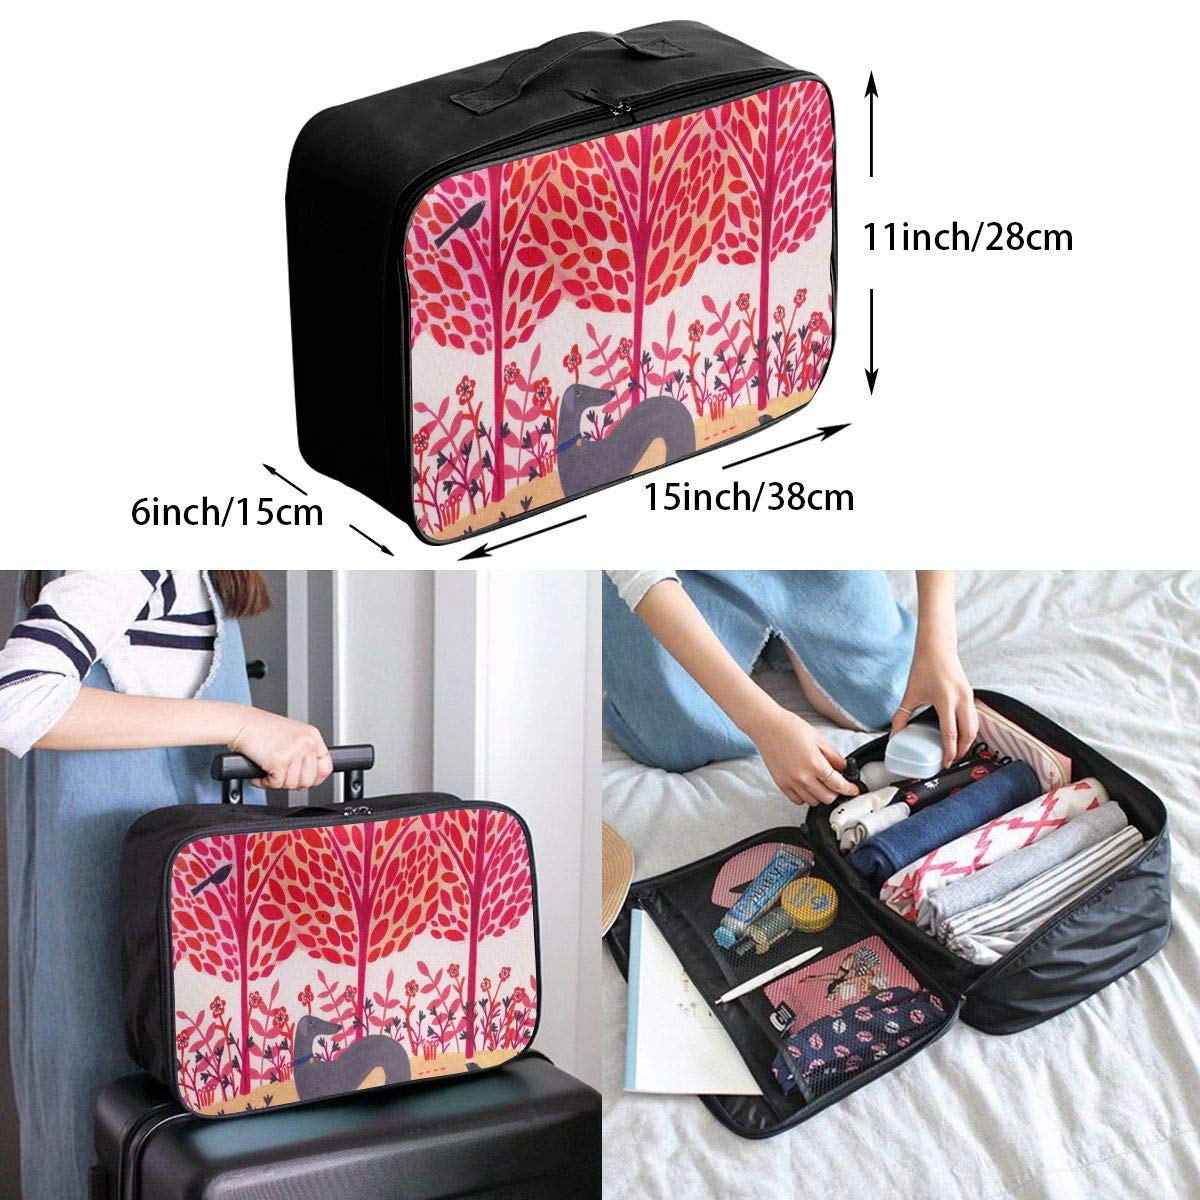 Avocado Pink Pattern Travel Duffel Bag Waterproof Foldable Bag Lightweight Convenient Large Capacity Portable Luggage Lever Bag